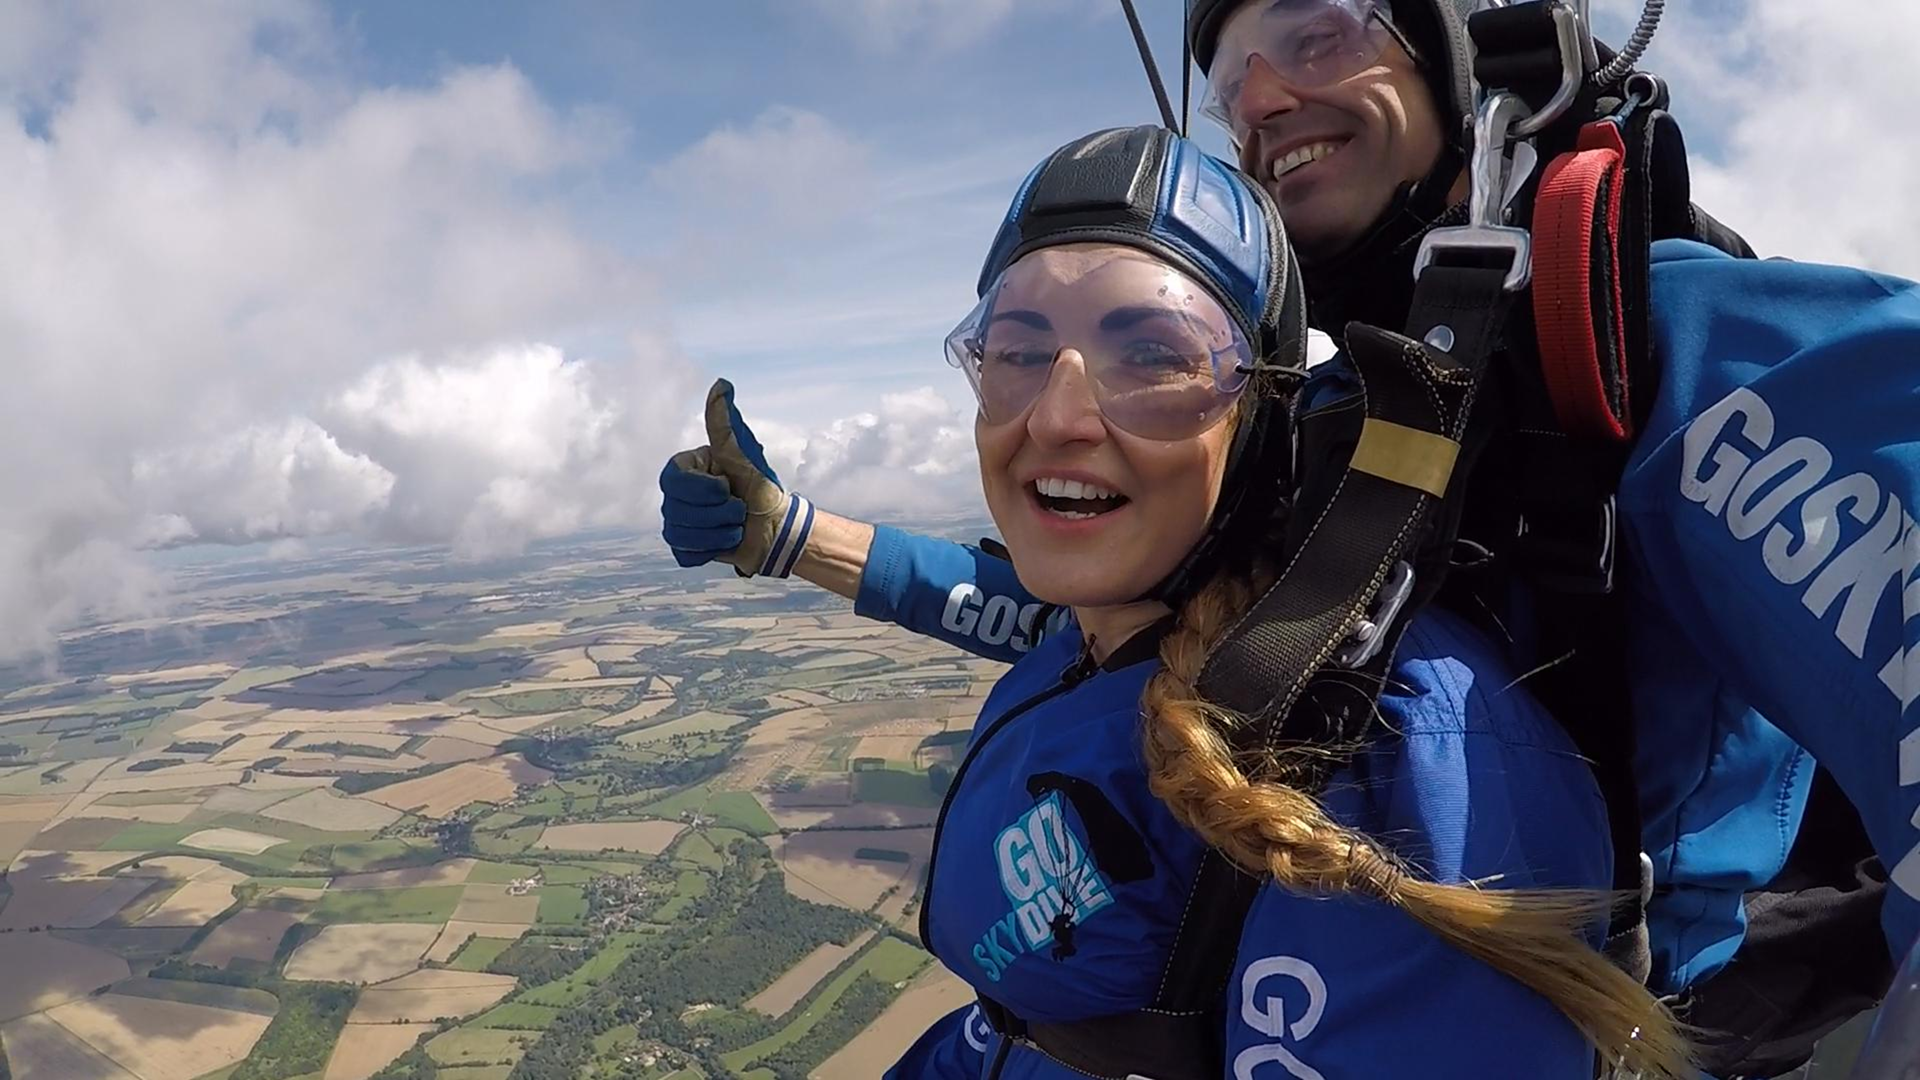 Skydive July 2019